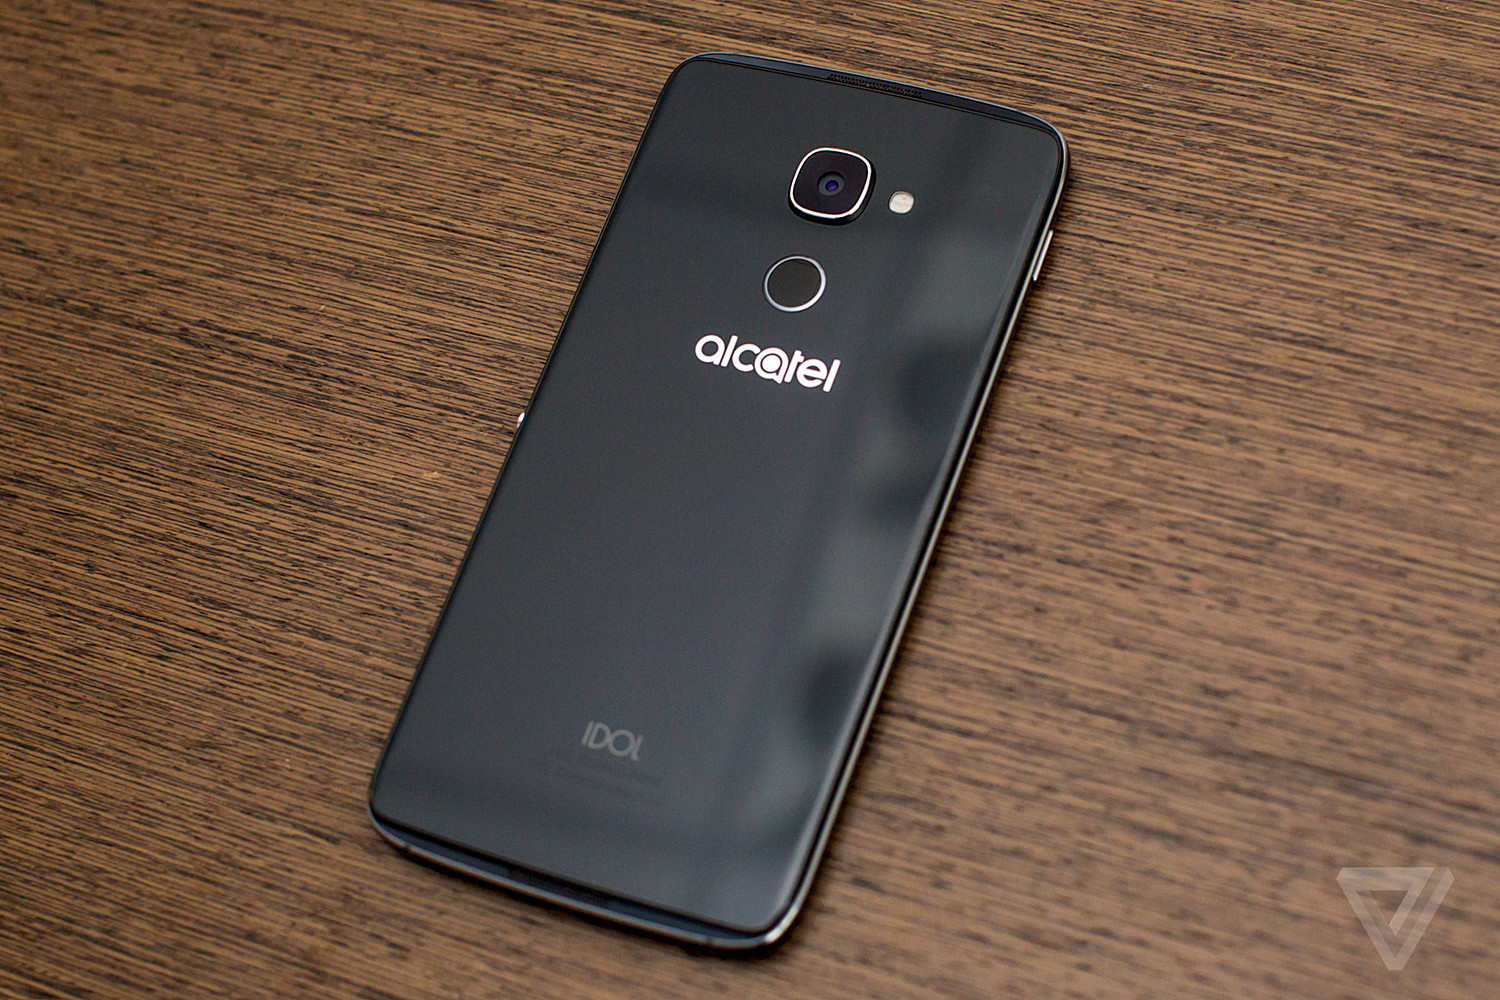 Alcatel Idol 4S review: it's hard out there for a phone - The Verge